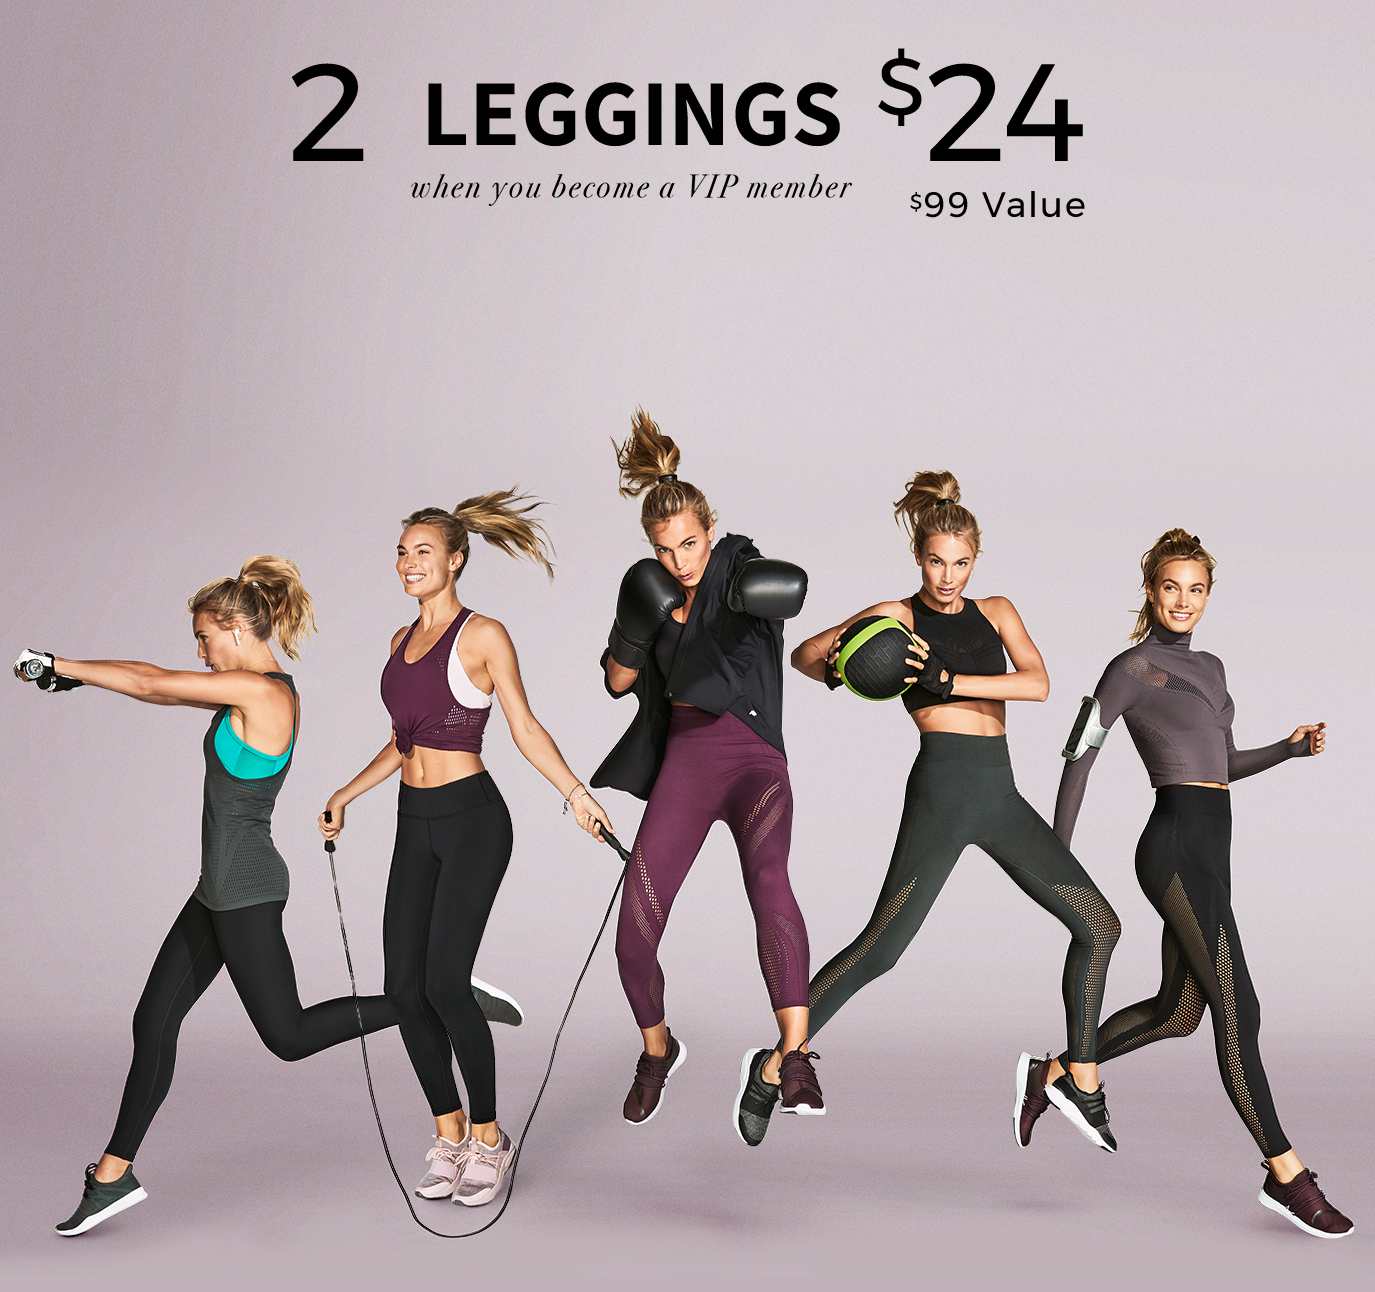 World best leggings 2 for 24$